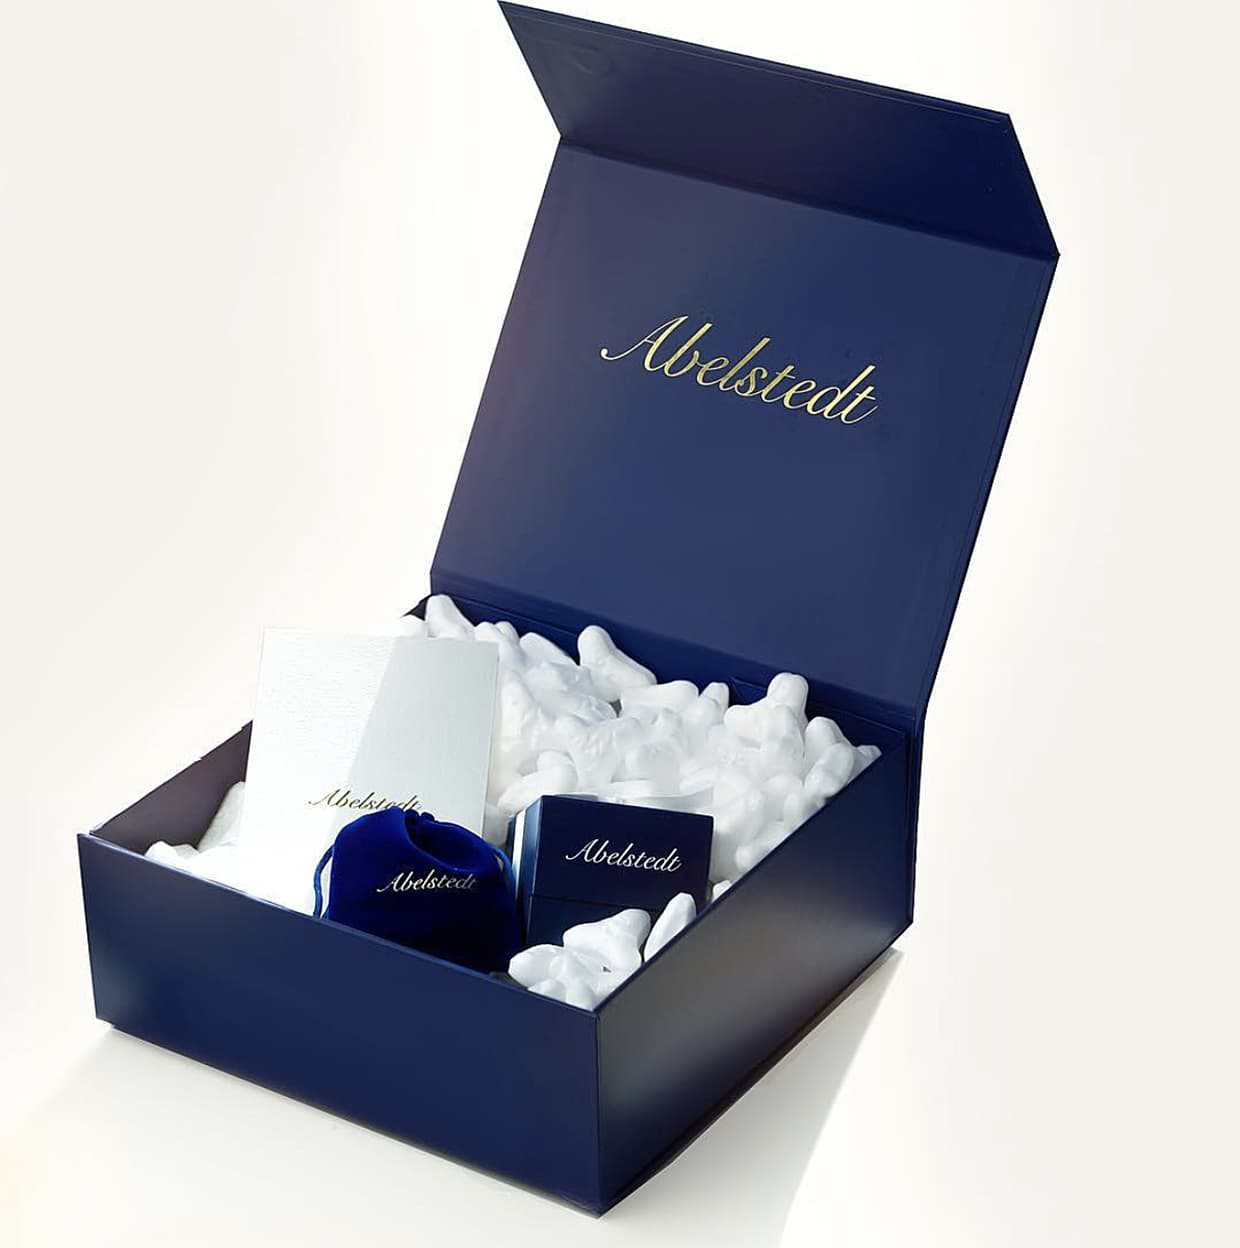 Abelstedt jewelry packaging